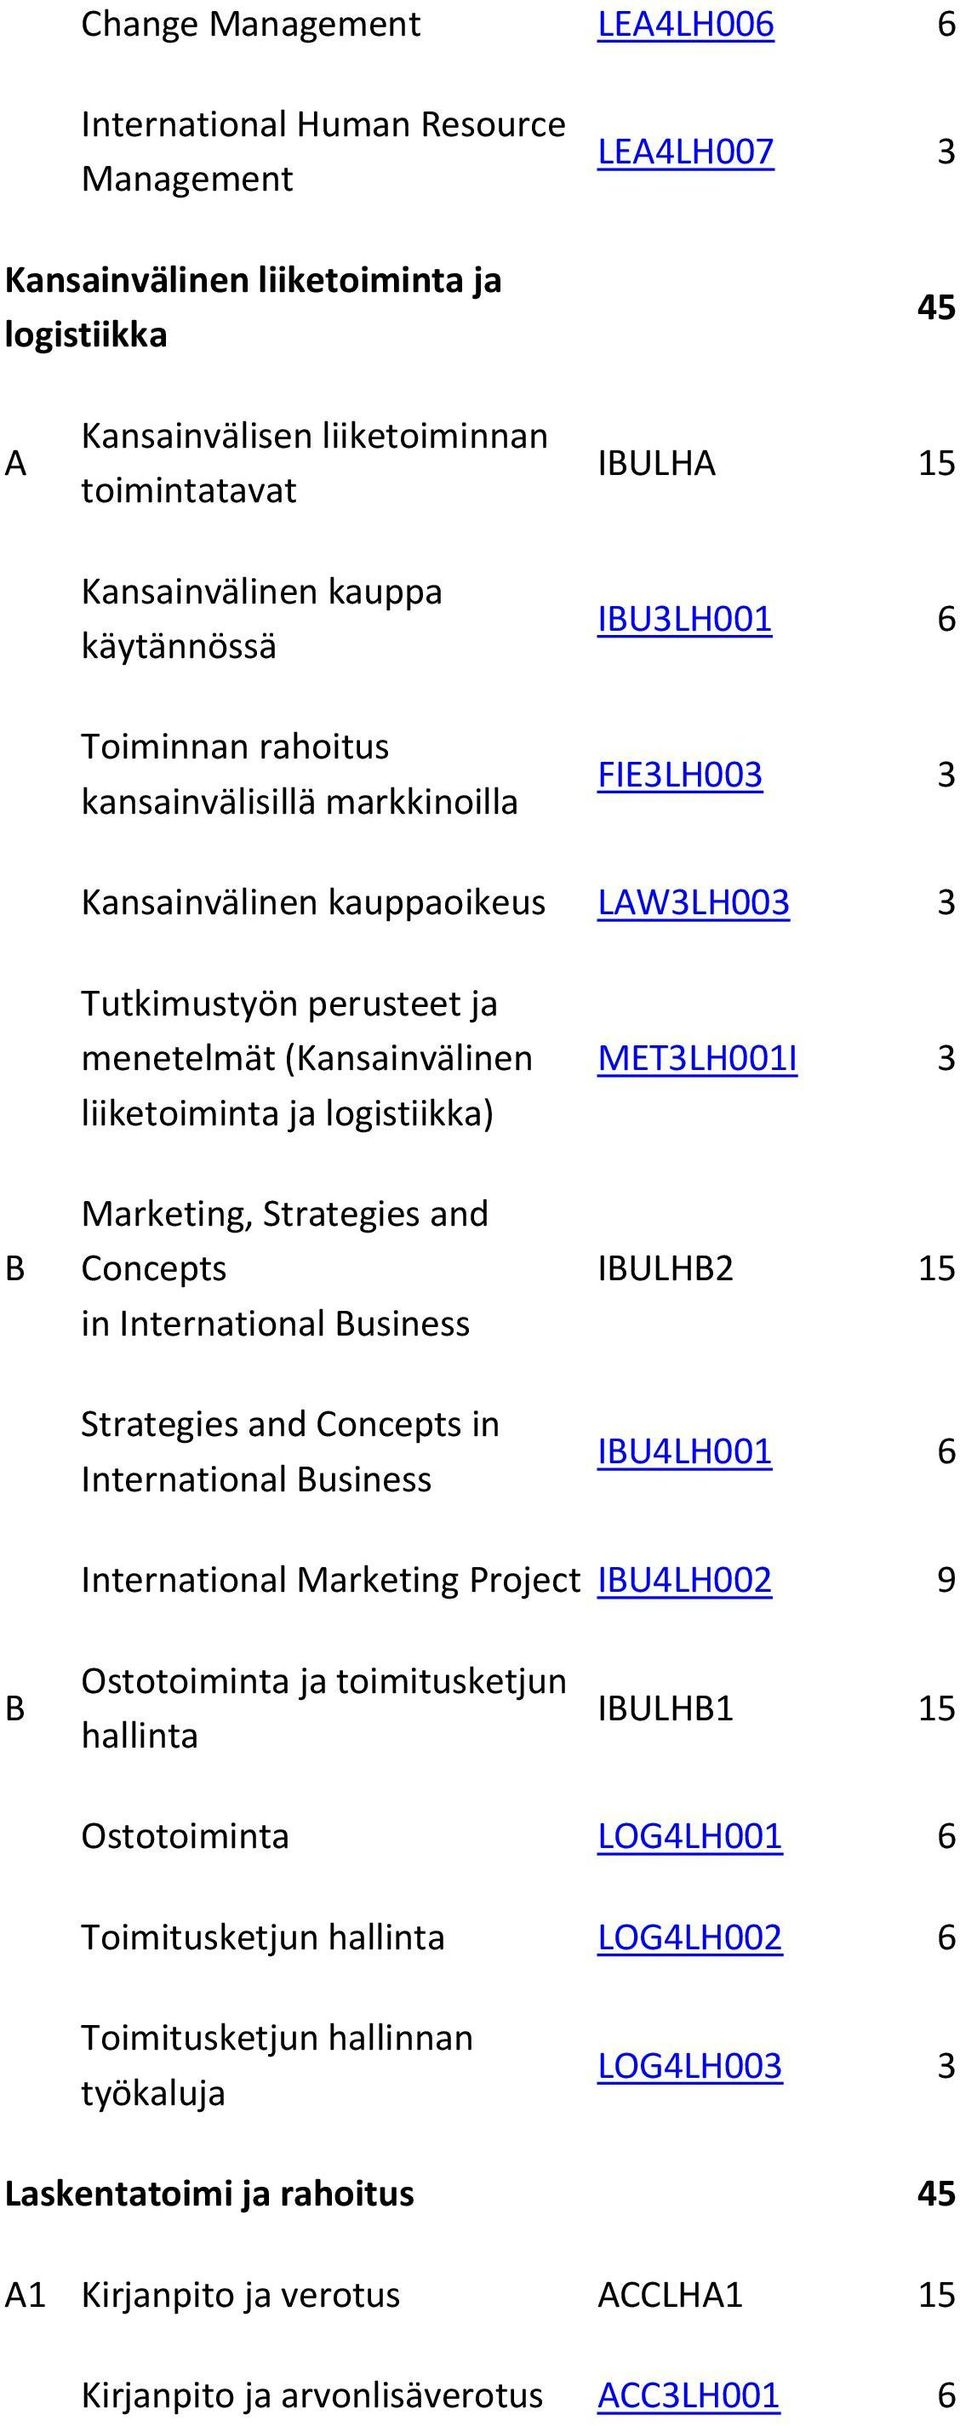 liiketoiminta ja logistiikka) MET3LH001I 3 B Marketing, Strategies and Concepts in International Business IBULHB2 15 Strategies and Concepts in International Business IBU4LH001 6 International